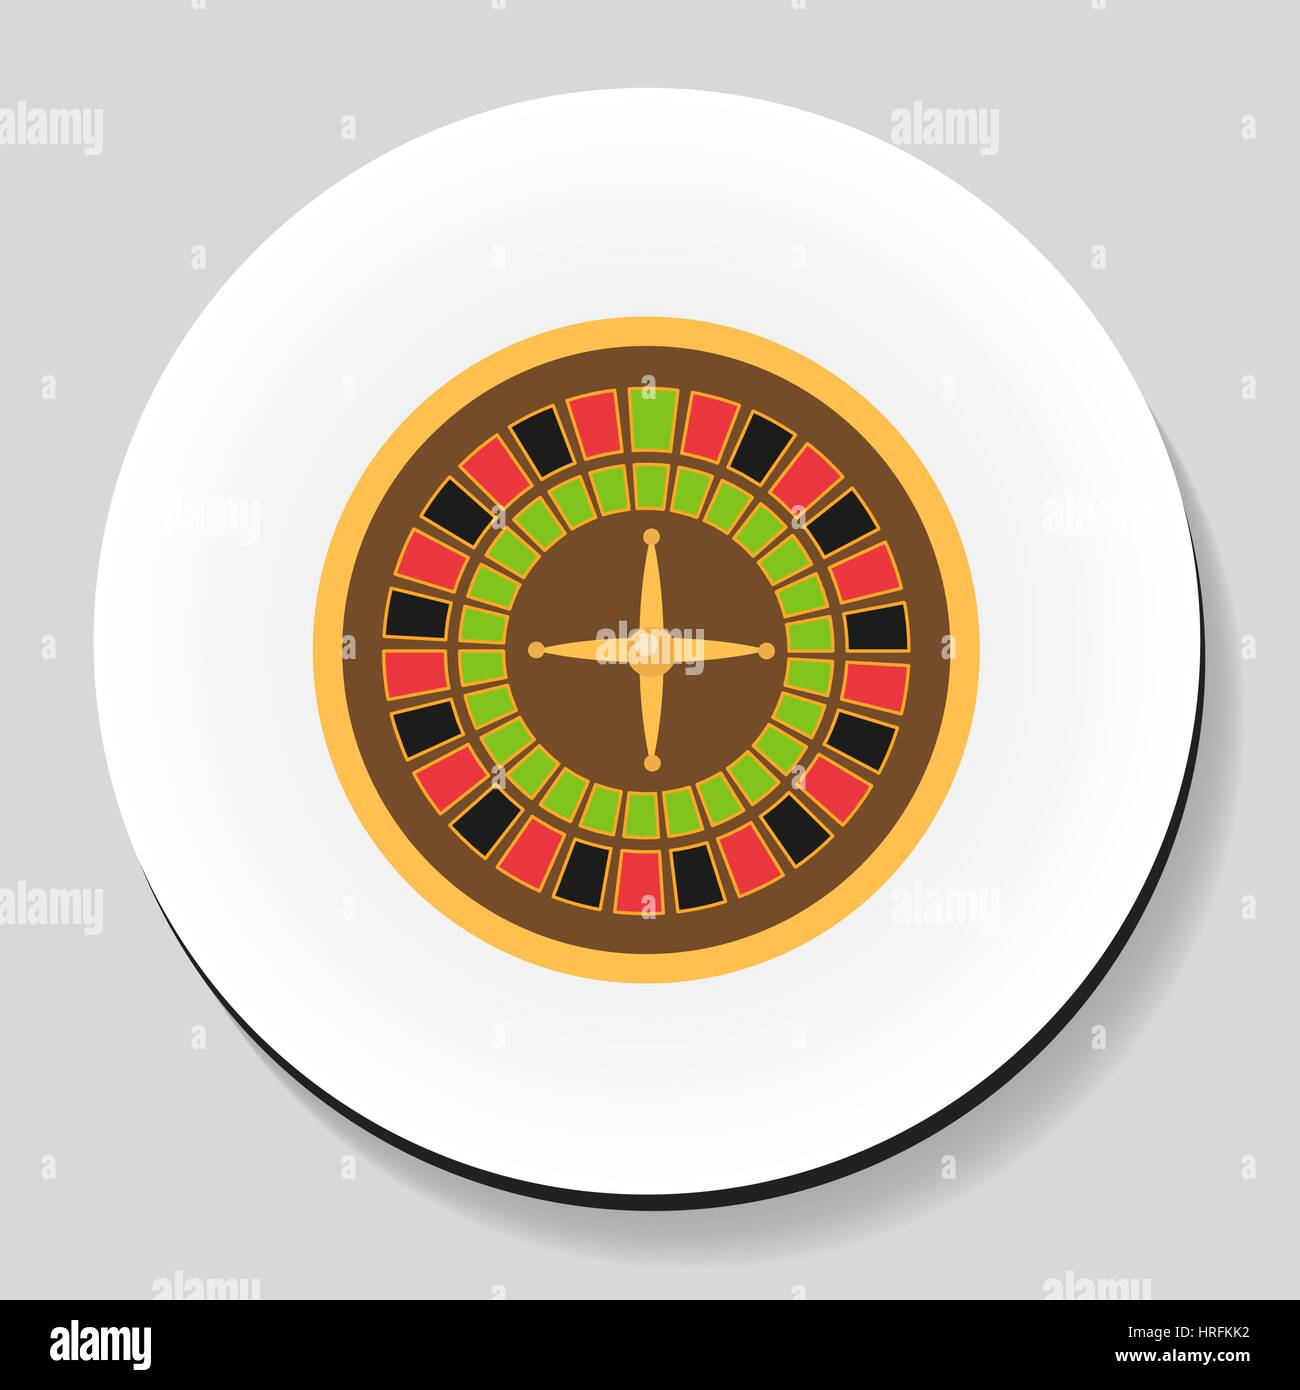 Roulette is a casino game sticker icon flat style. Vector illustration. - Stock Vector